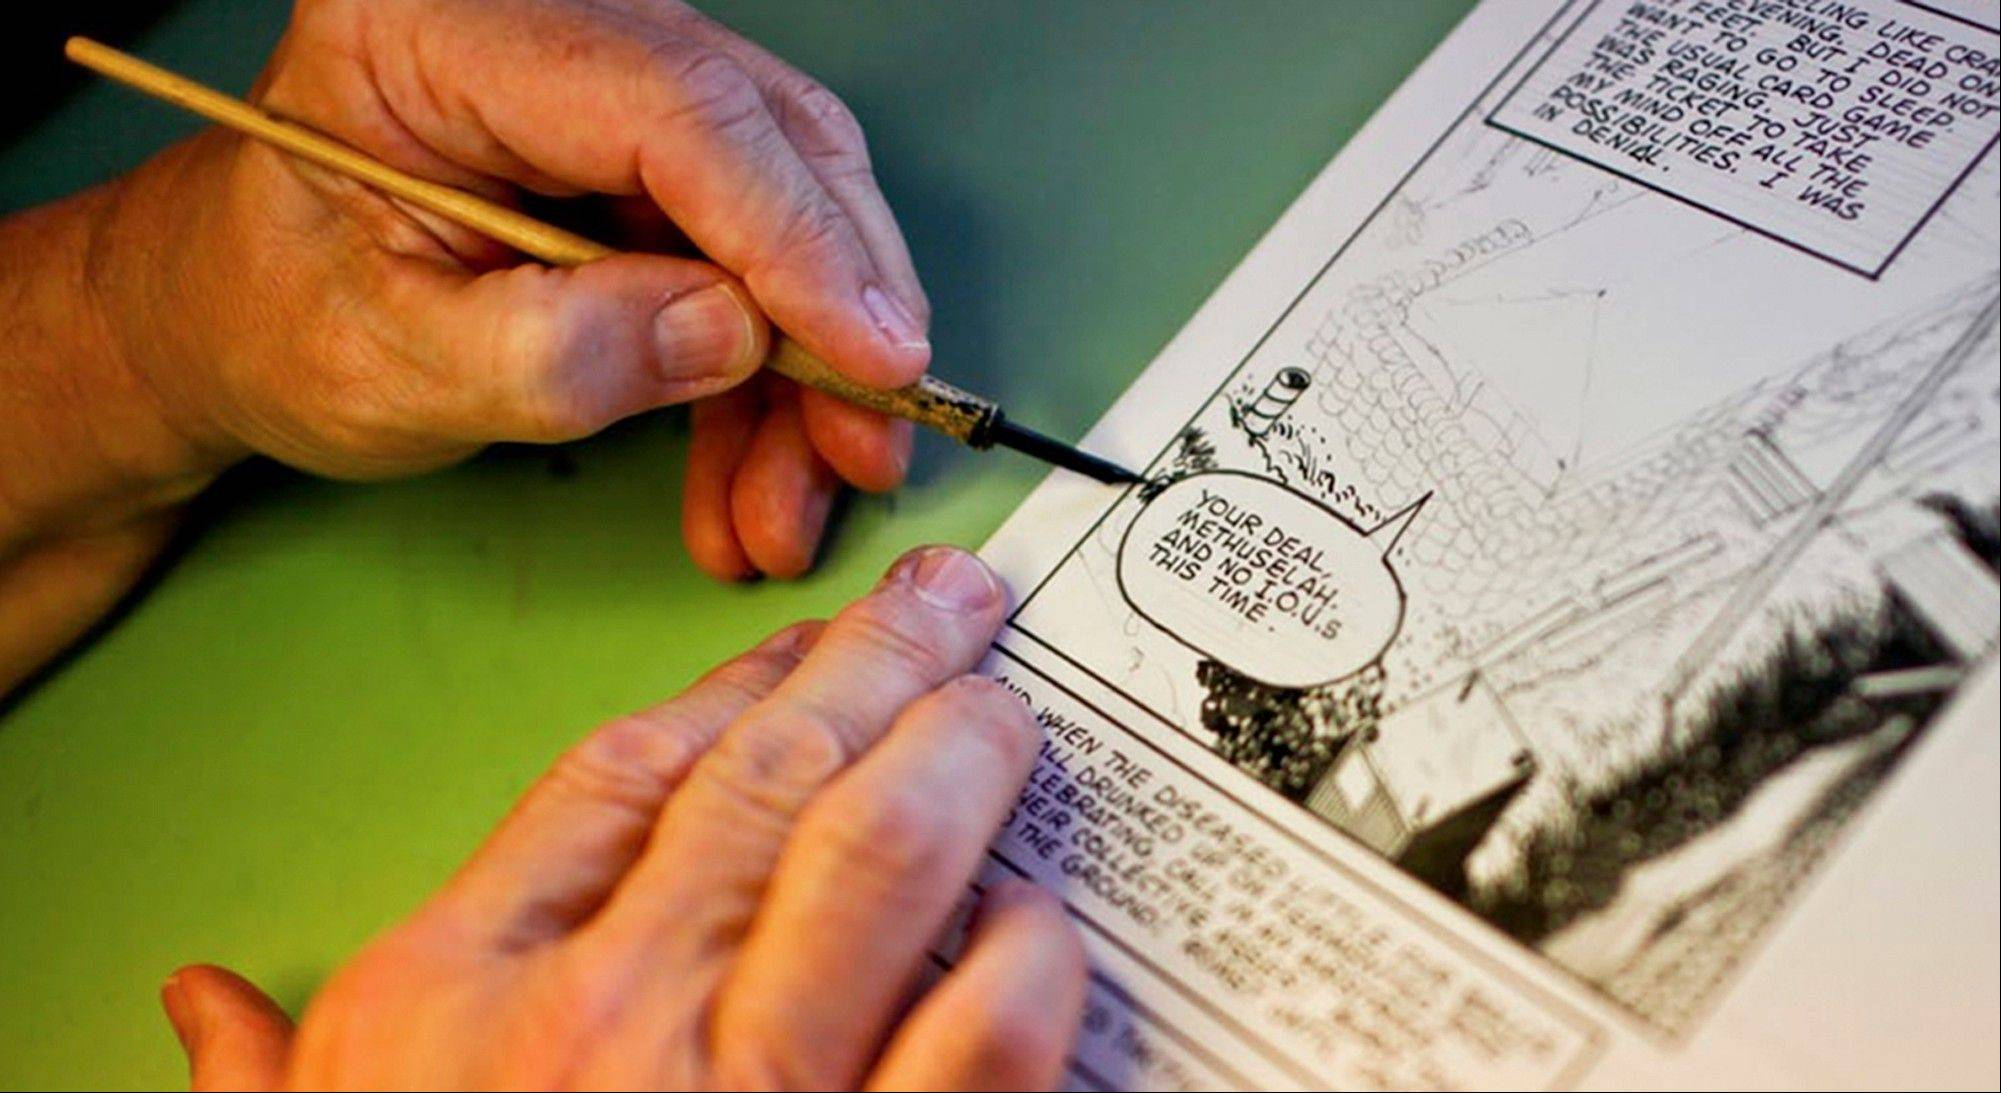 Don Lomax, 66, uses a fountain pen as he draws his comic �Vietnam Journal� at his home in Galesburg, Ill. Lomax bases the stories in his comics on his experience in the Vietnam War.